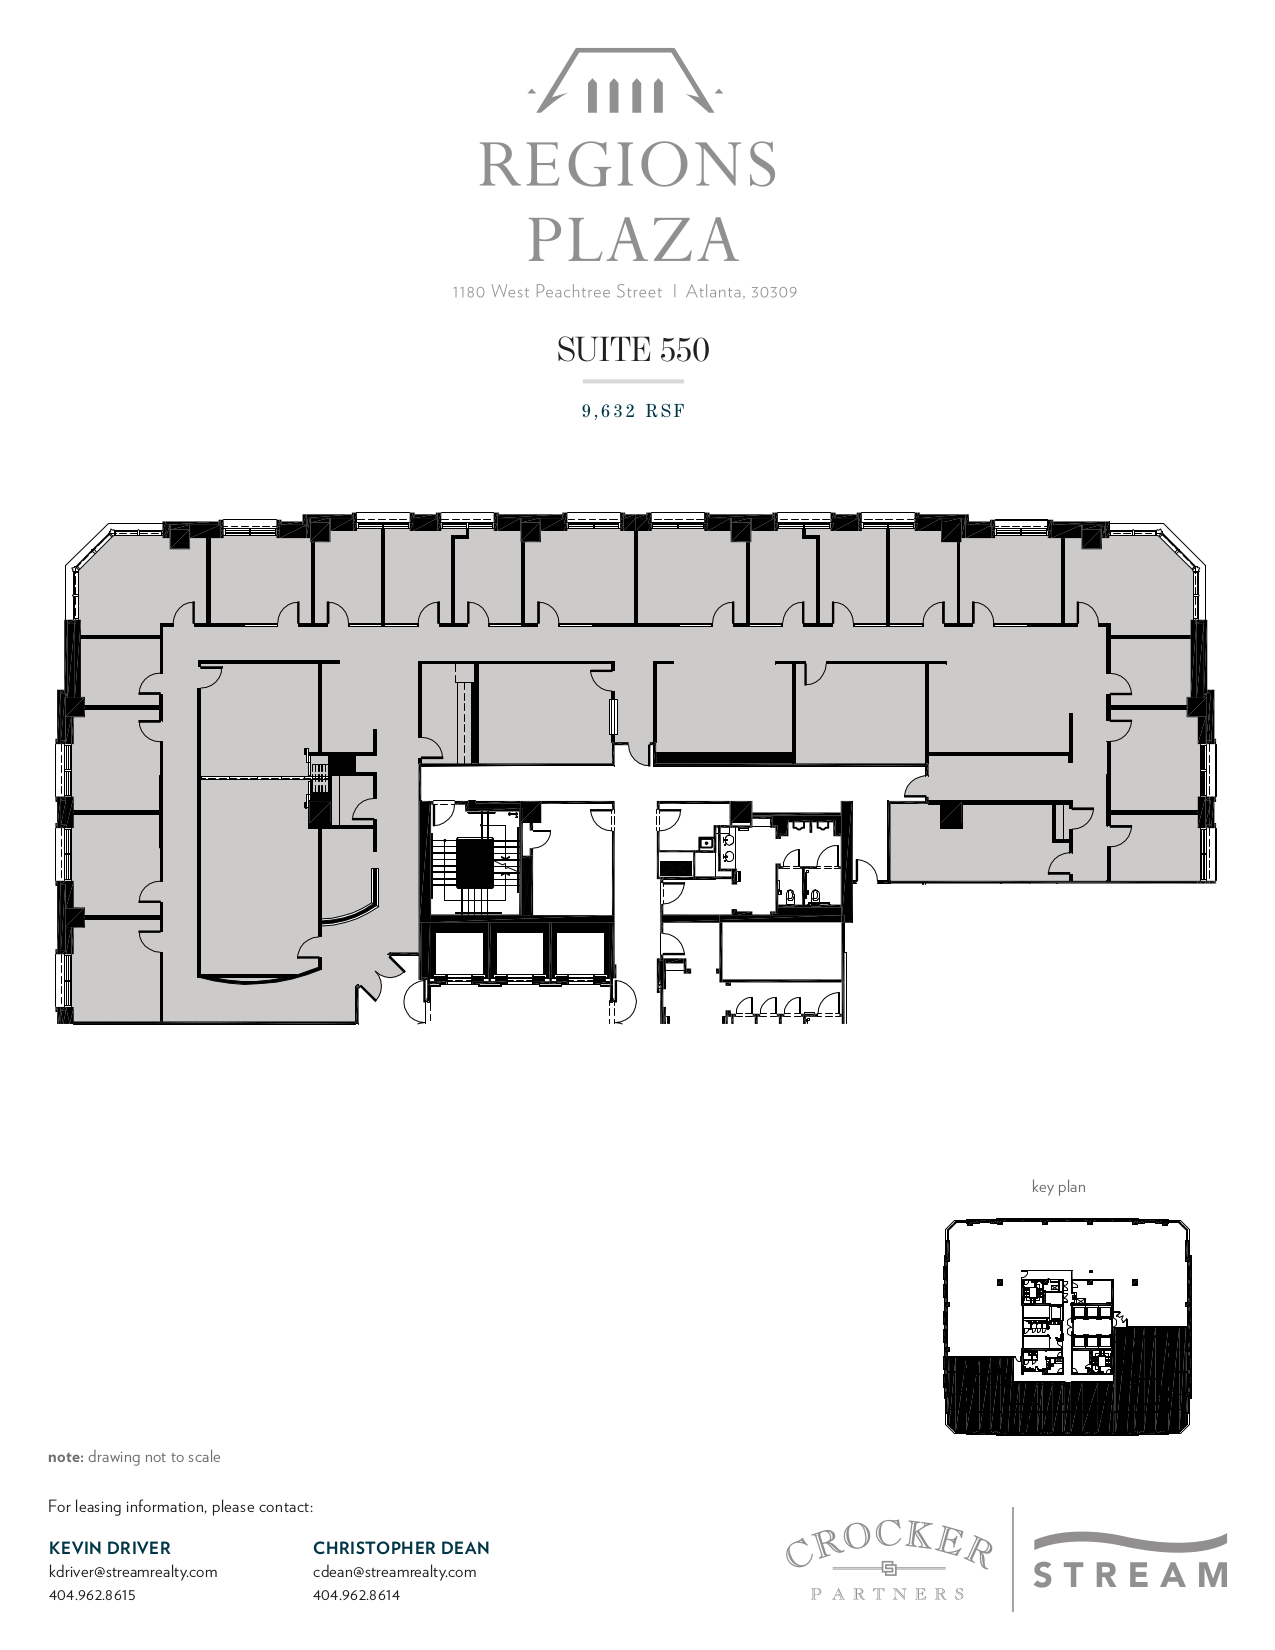 Regions plaza 1180 w peachtree street 5th floor unit for Vice president house floor plan